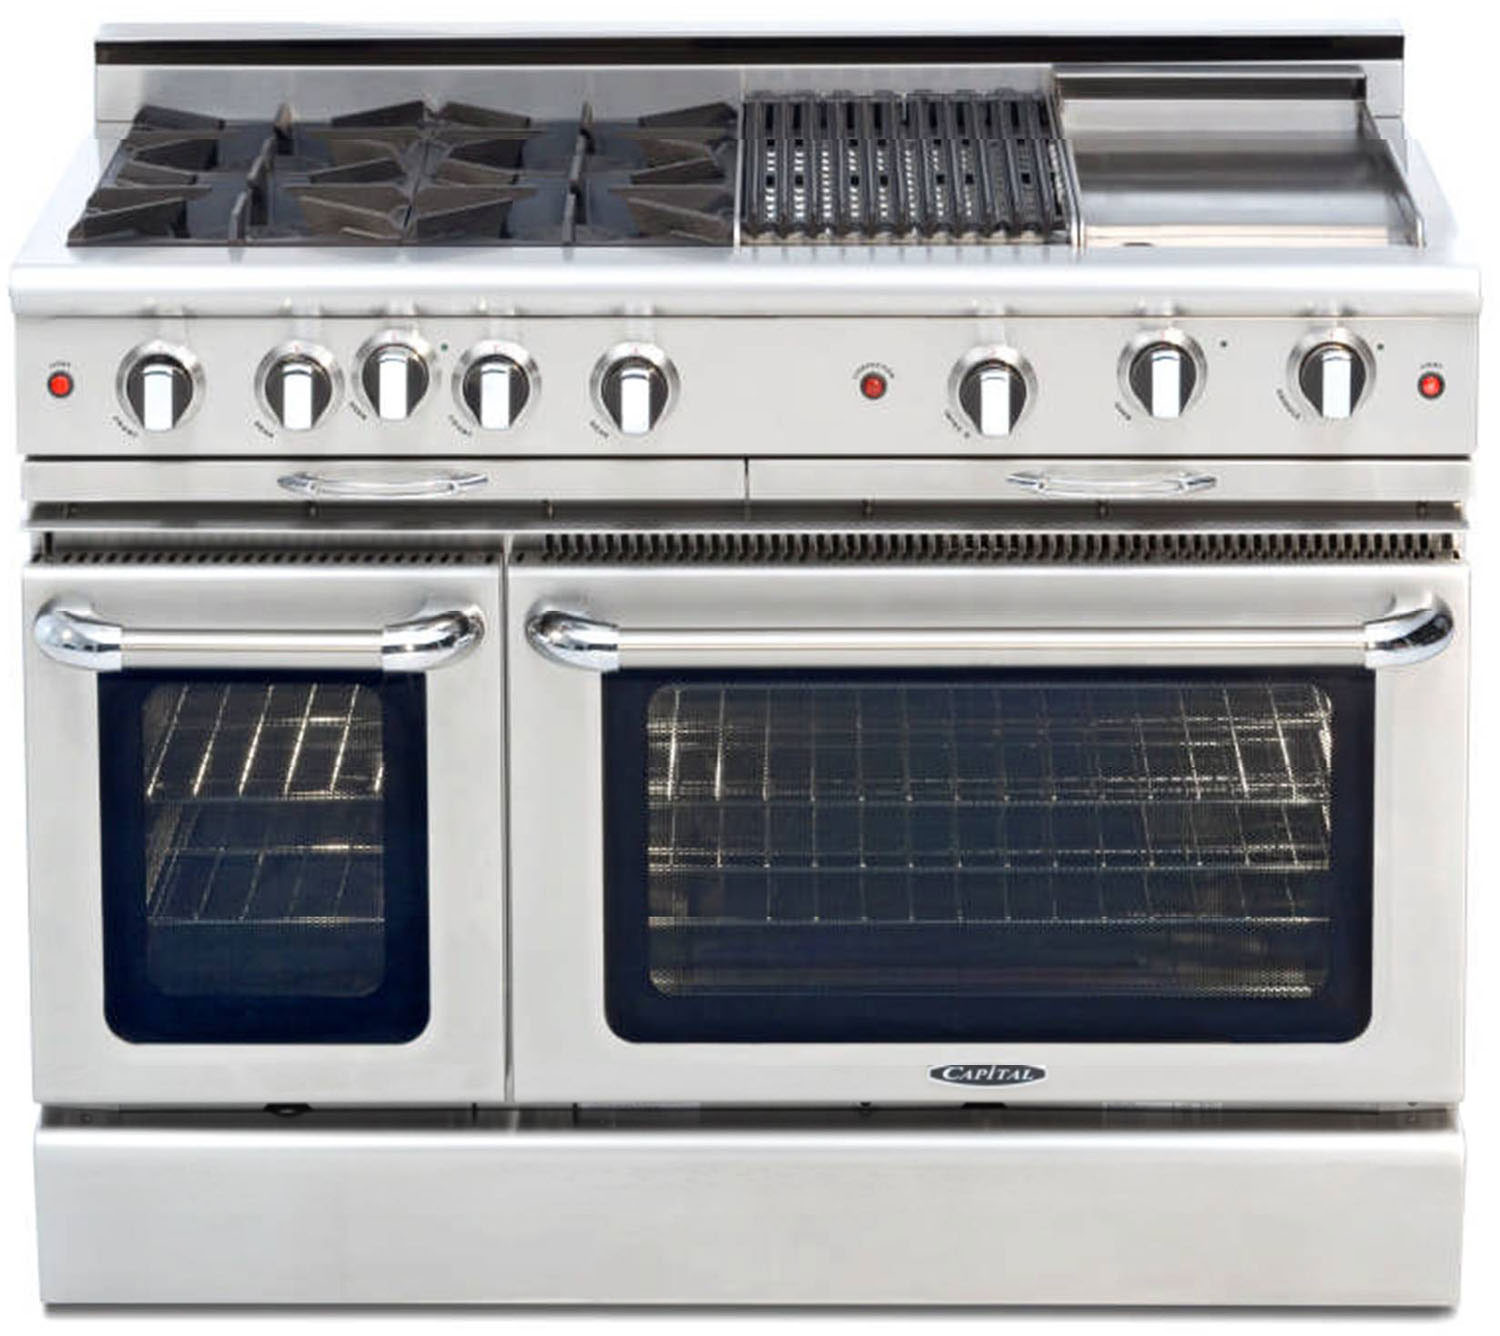 Capital Cgsr482bg2n 48 Inch Pro Style Gas Range With 4 Open Burners 12 Thermo Griddle Bbq Grill Self Clean Moto Rotis Rotisserie Ez Glides Drip